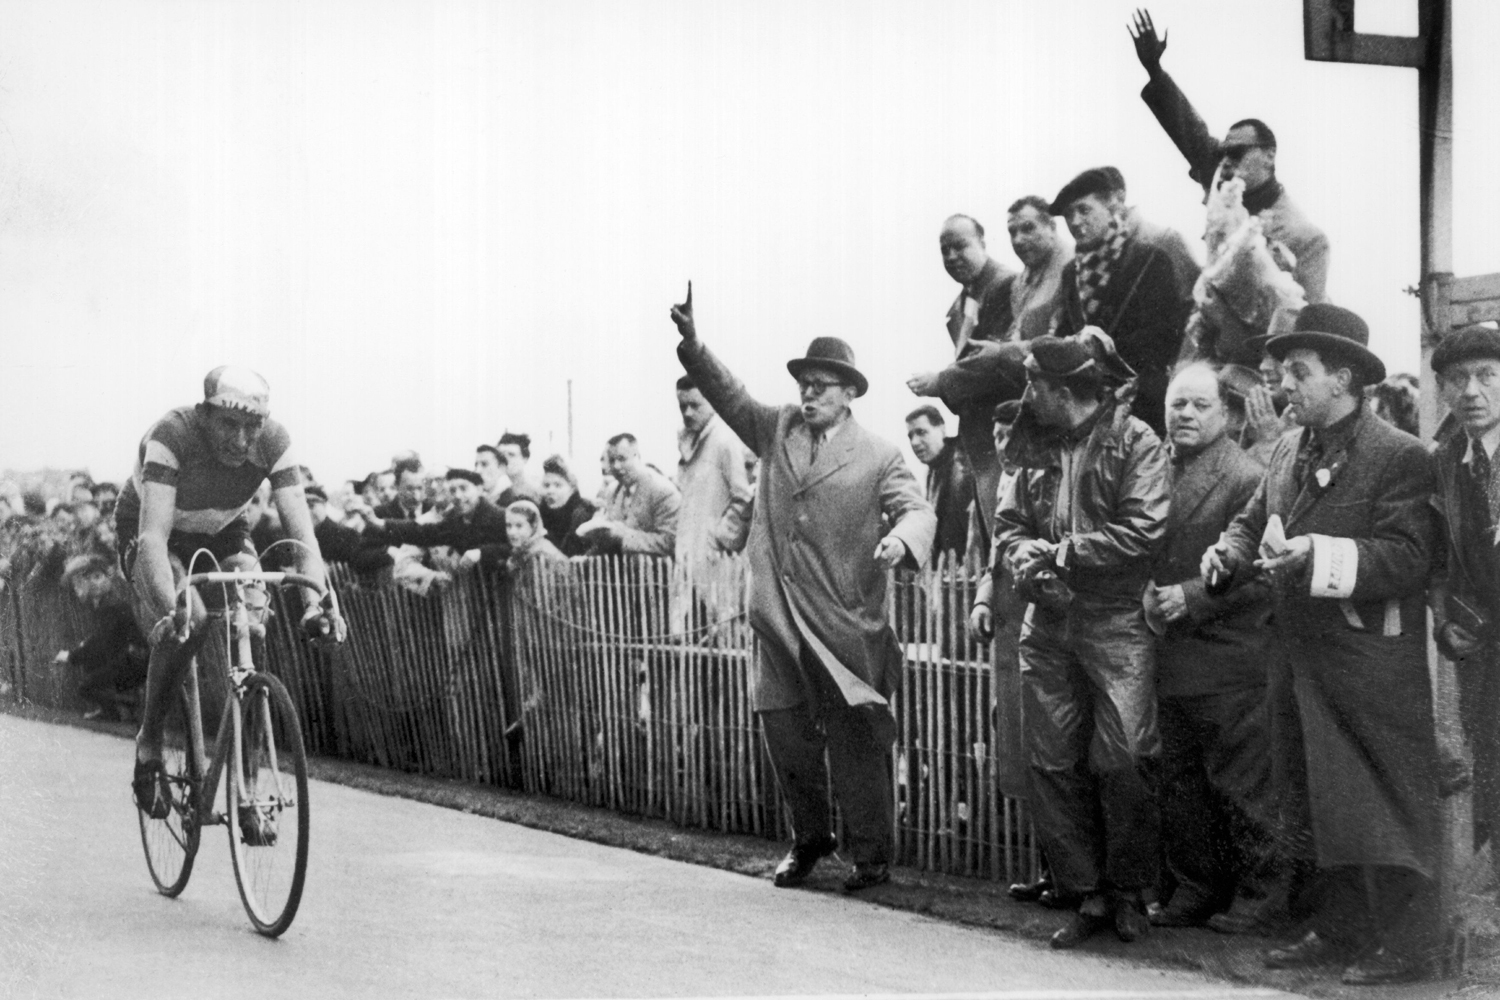 Il Campionissimo, a champion of champions, Coppi won his first race at the age of 15. His reward: 20 lire and a salami sandwich. Despite a career interrupted by WWII, Coppi won five grand tours and nine Monuments, including Paris-Roubaix, in 1950.